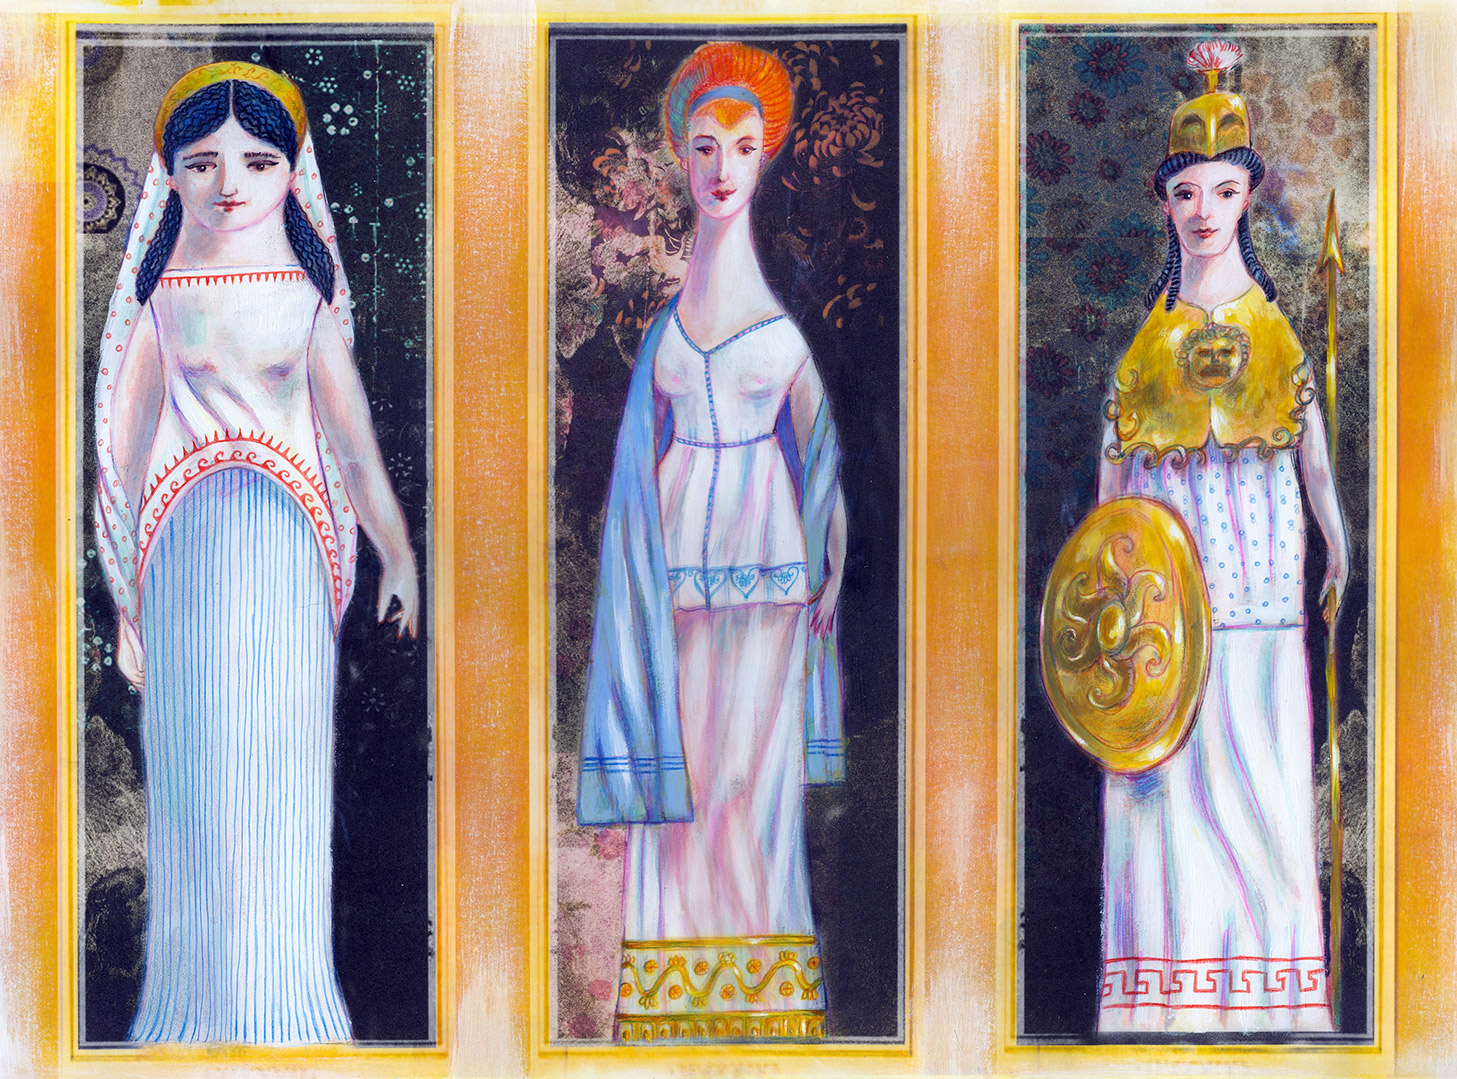 Hera, Athena and Aphrodite waiting for the judgement of Paris. Award winning illustration from the centennial edition of the book